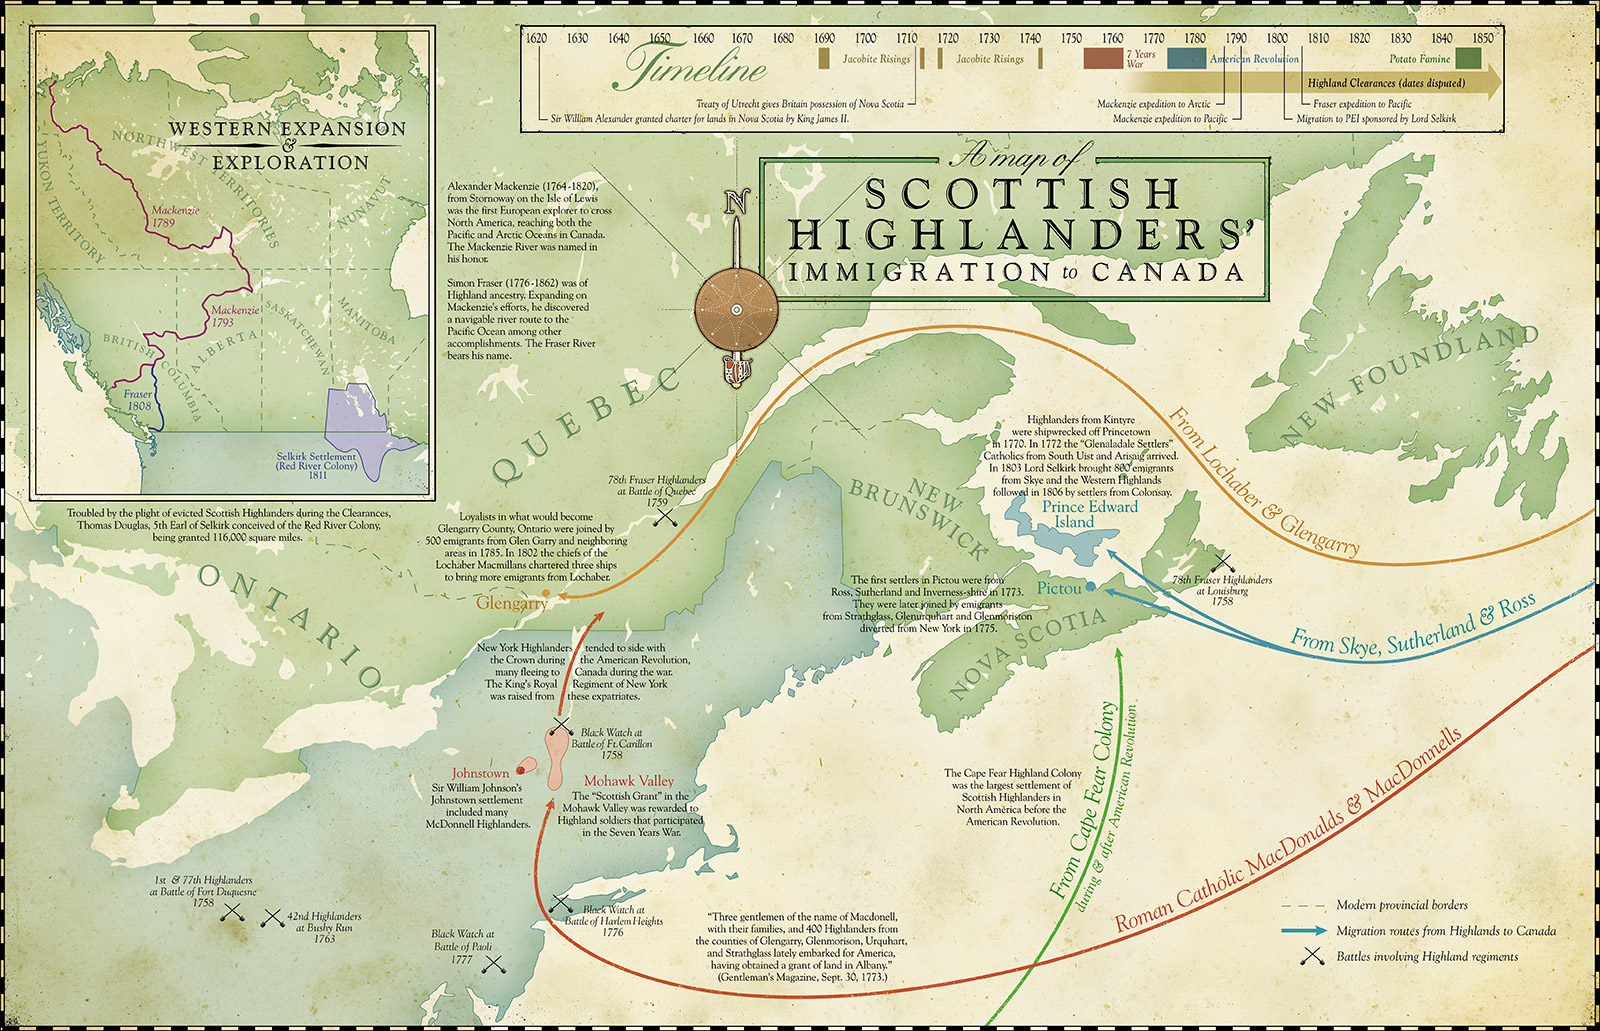 Immigration routes of the Scottish Highlanders